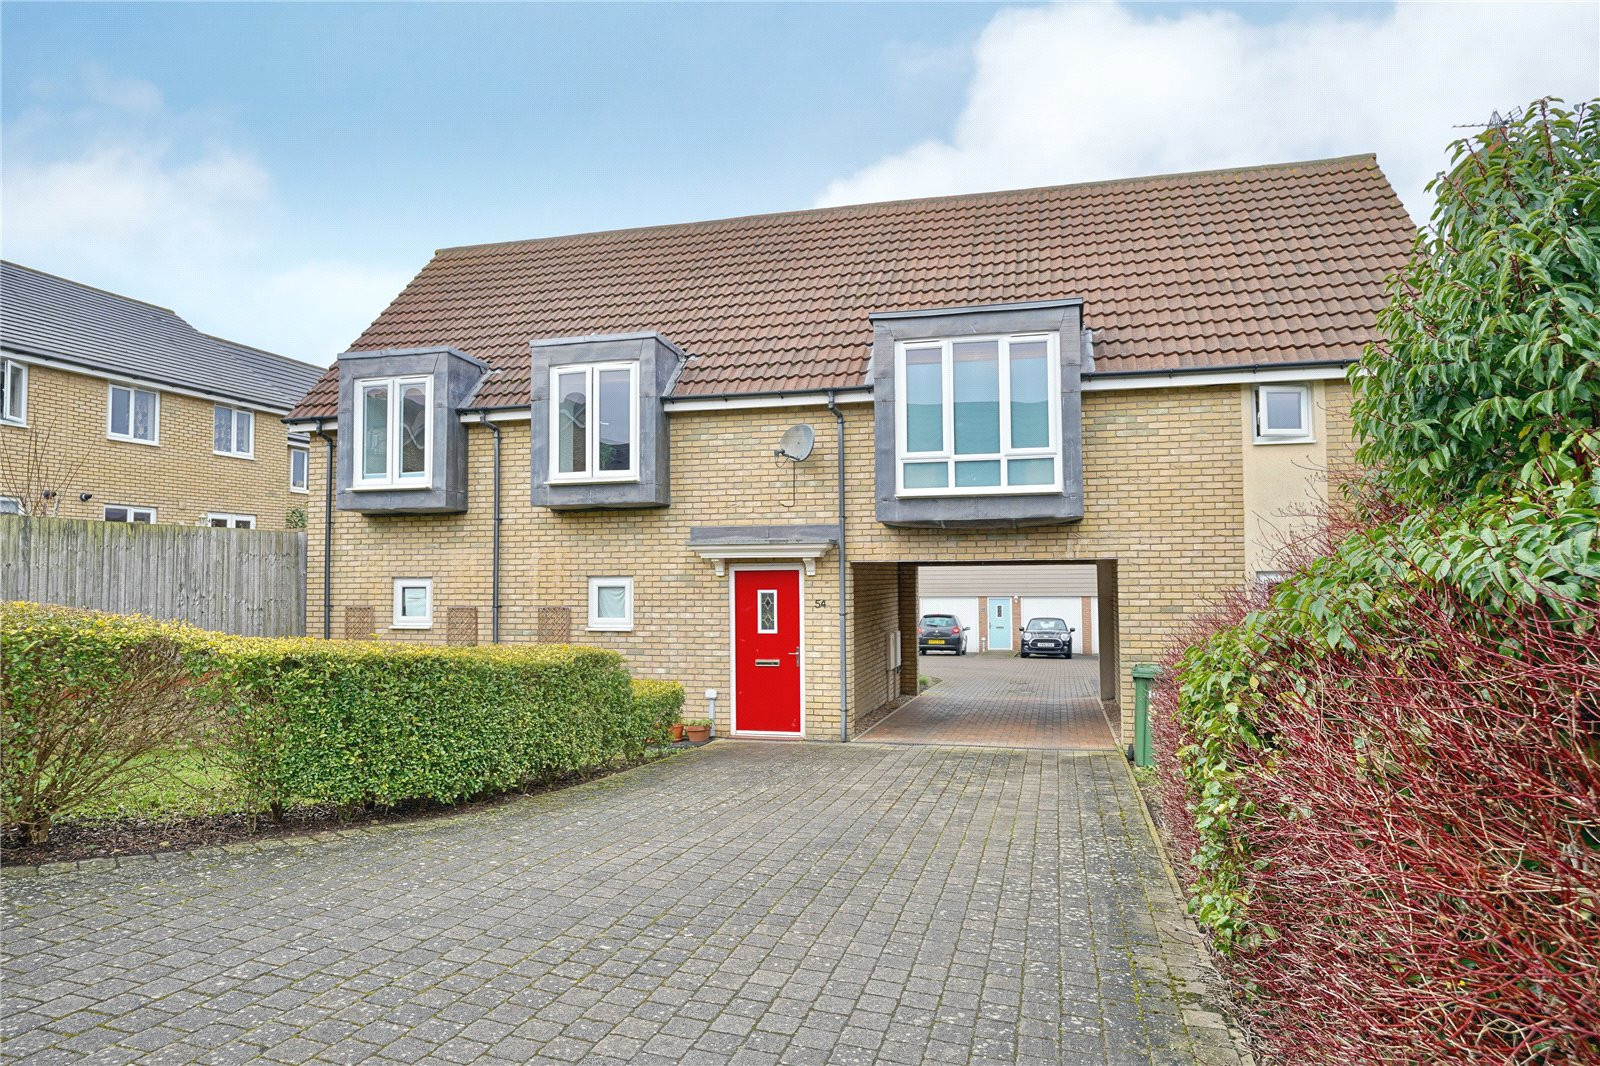 2 bed apartment for sale in Huntingdon, PE29 6LB - Property Image 1